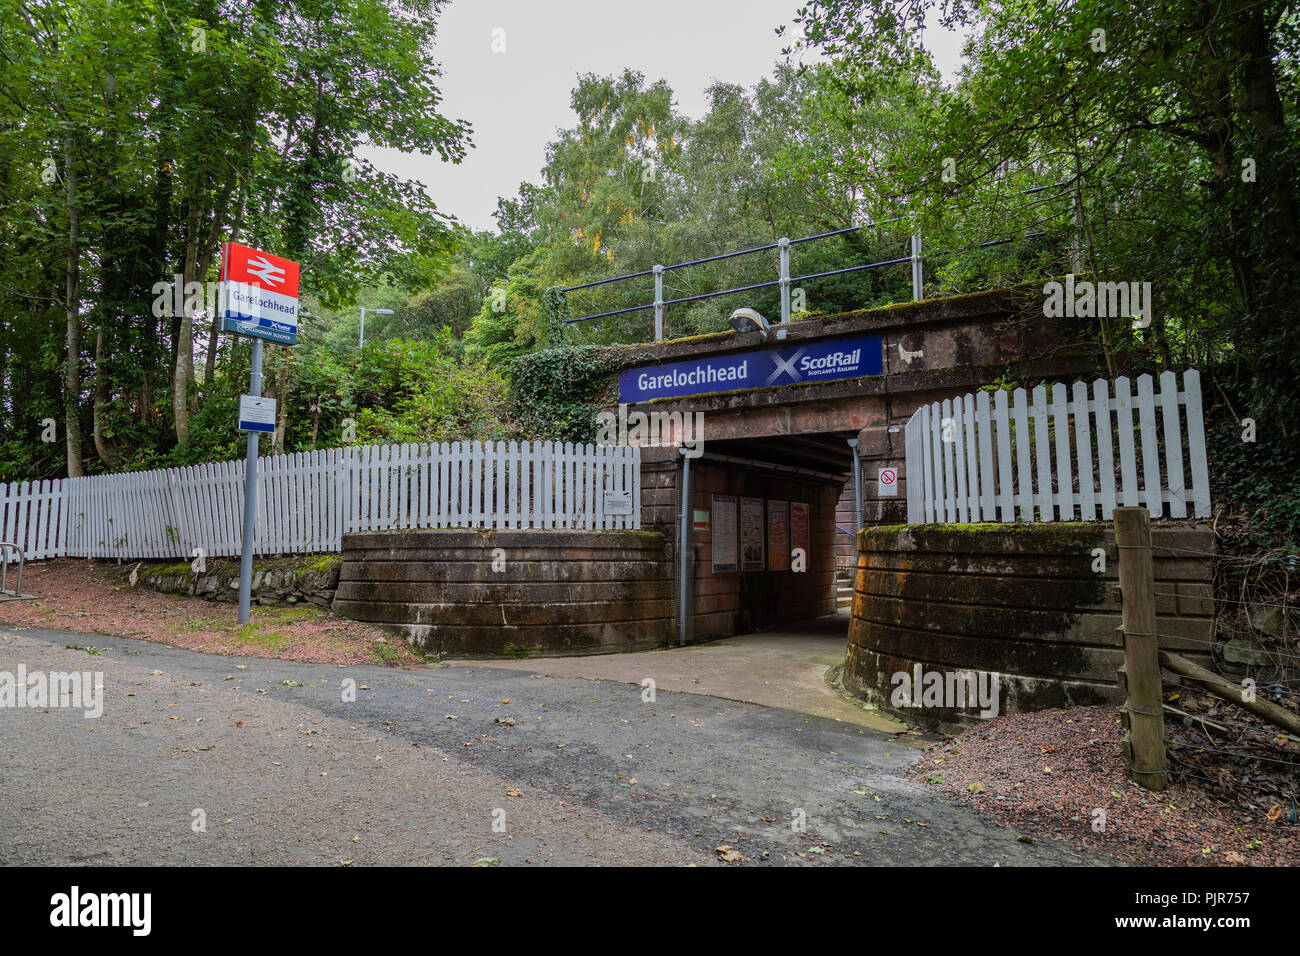 The entrance of Garelochhead train station in Argyll and Bute Scotland - Stock Image